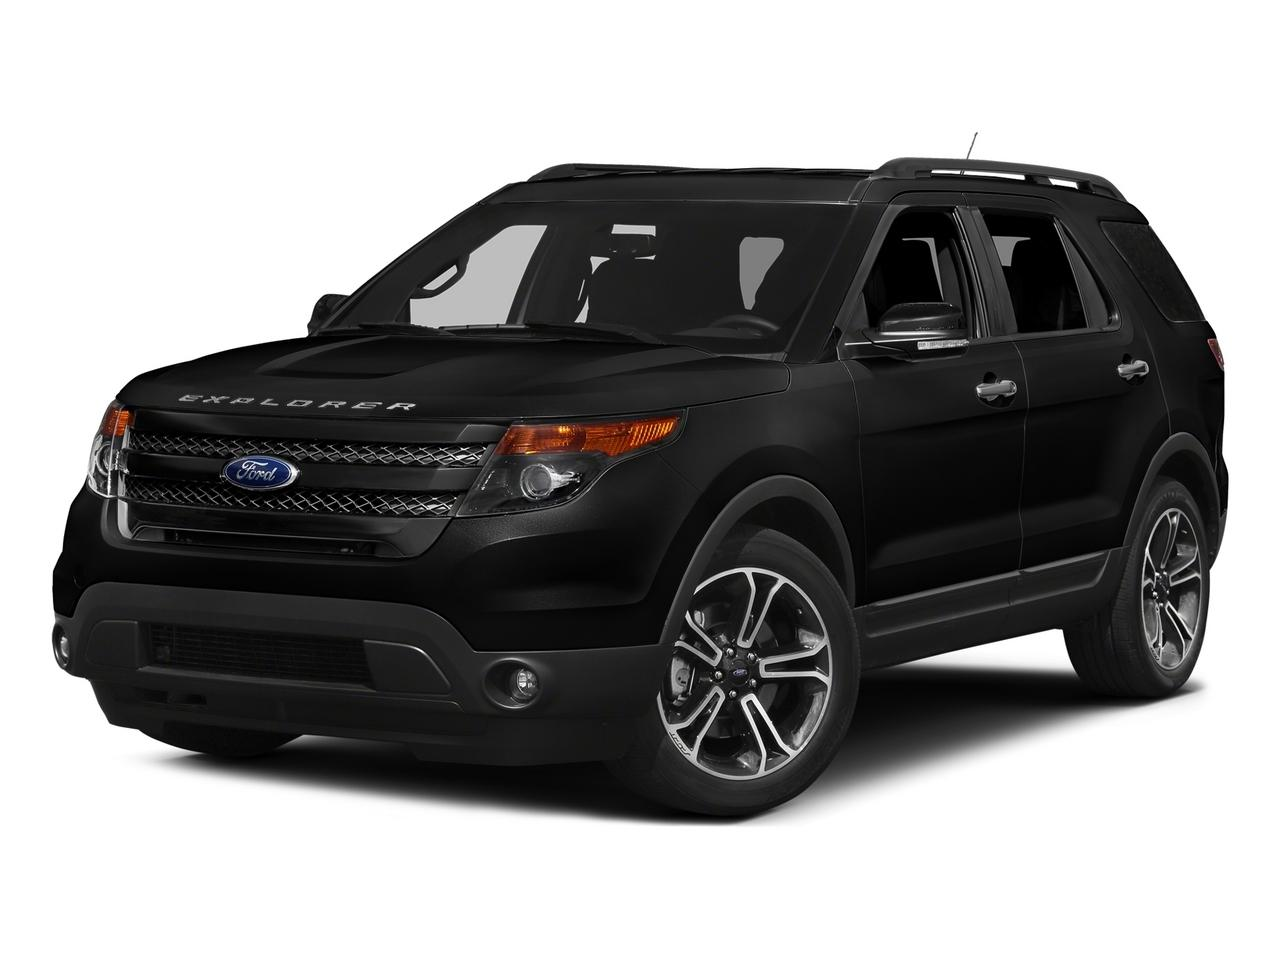 2015 Ford Explorer Vehicle Photo in COLORADO SPRINGS, CO 80905-7347